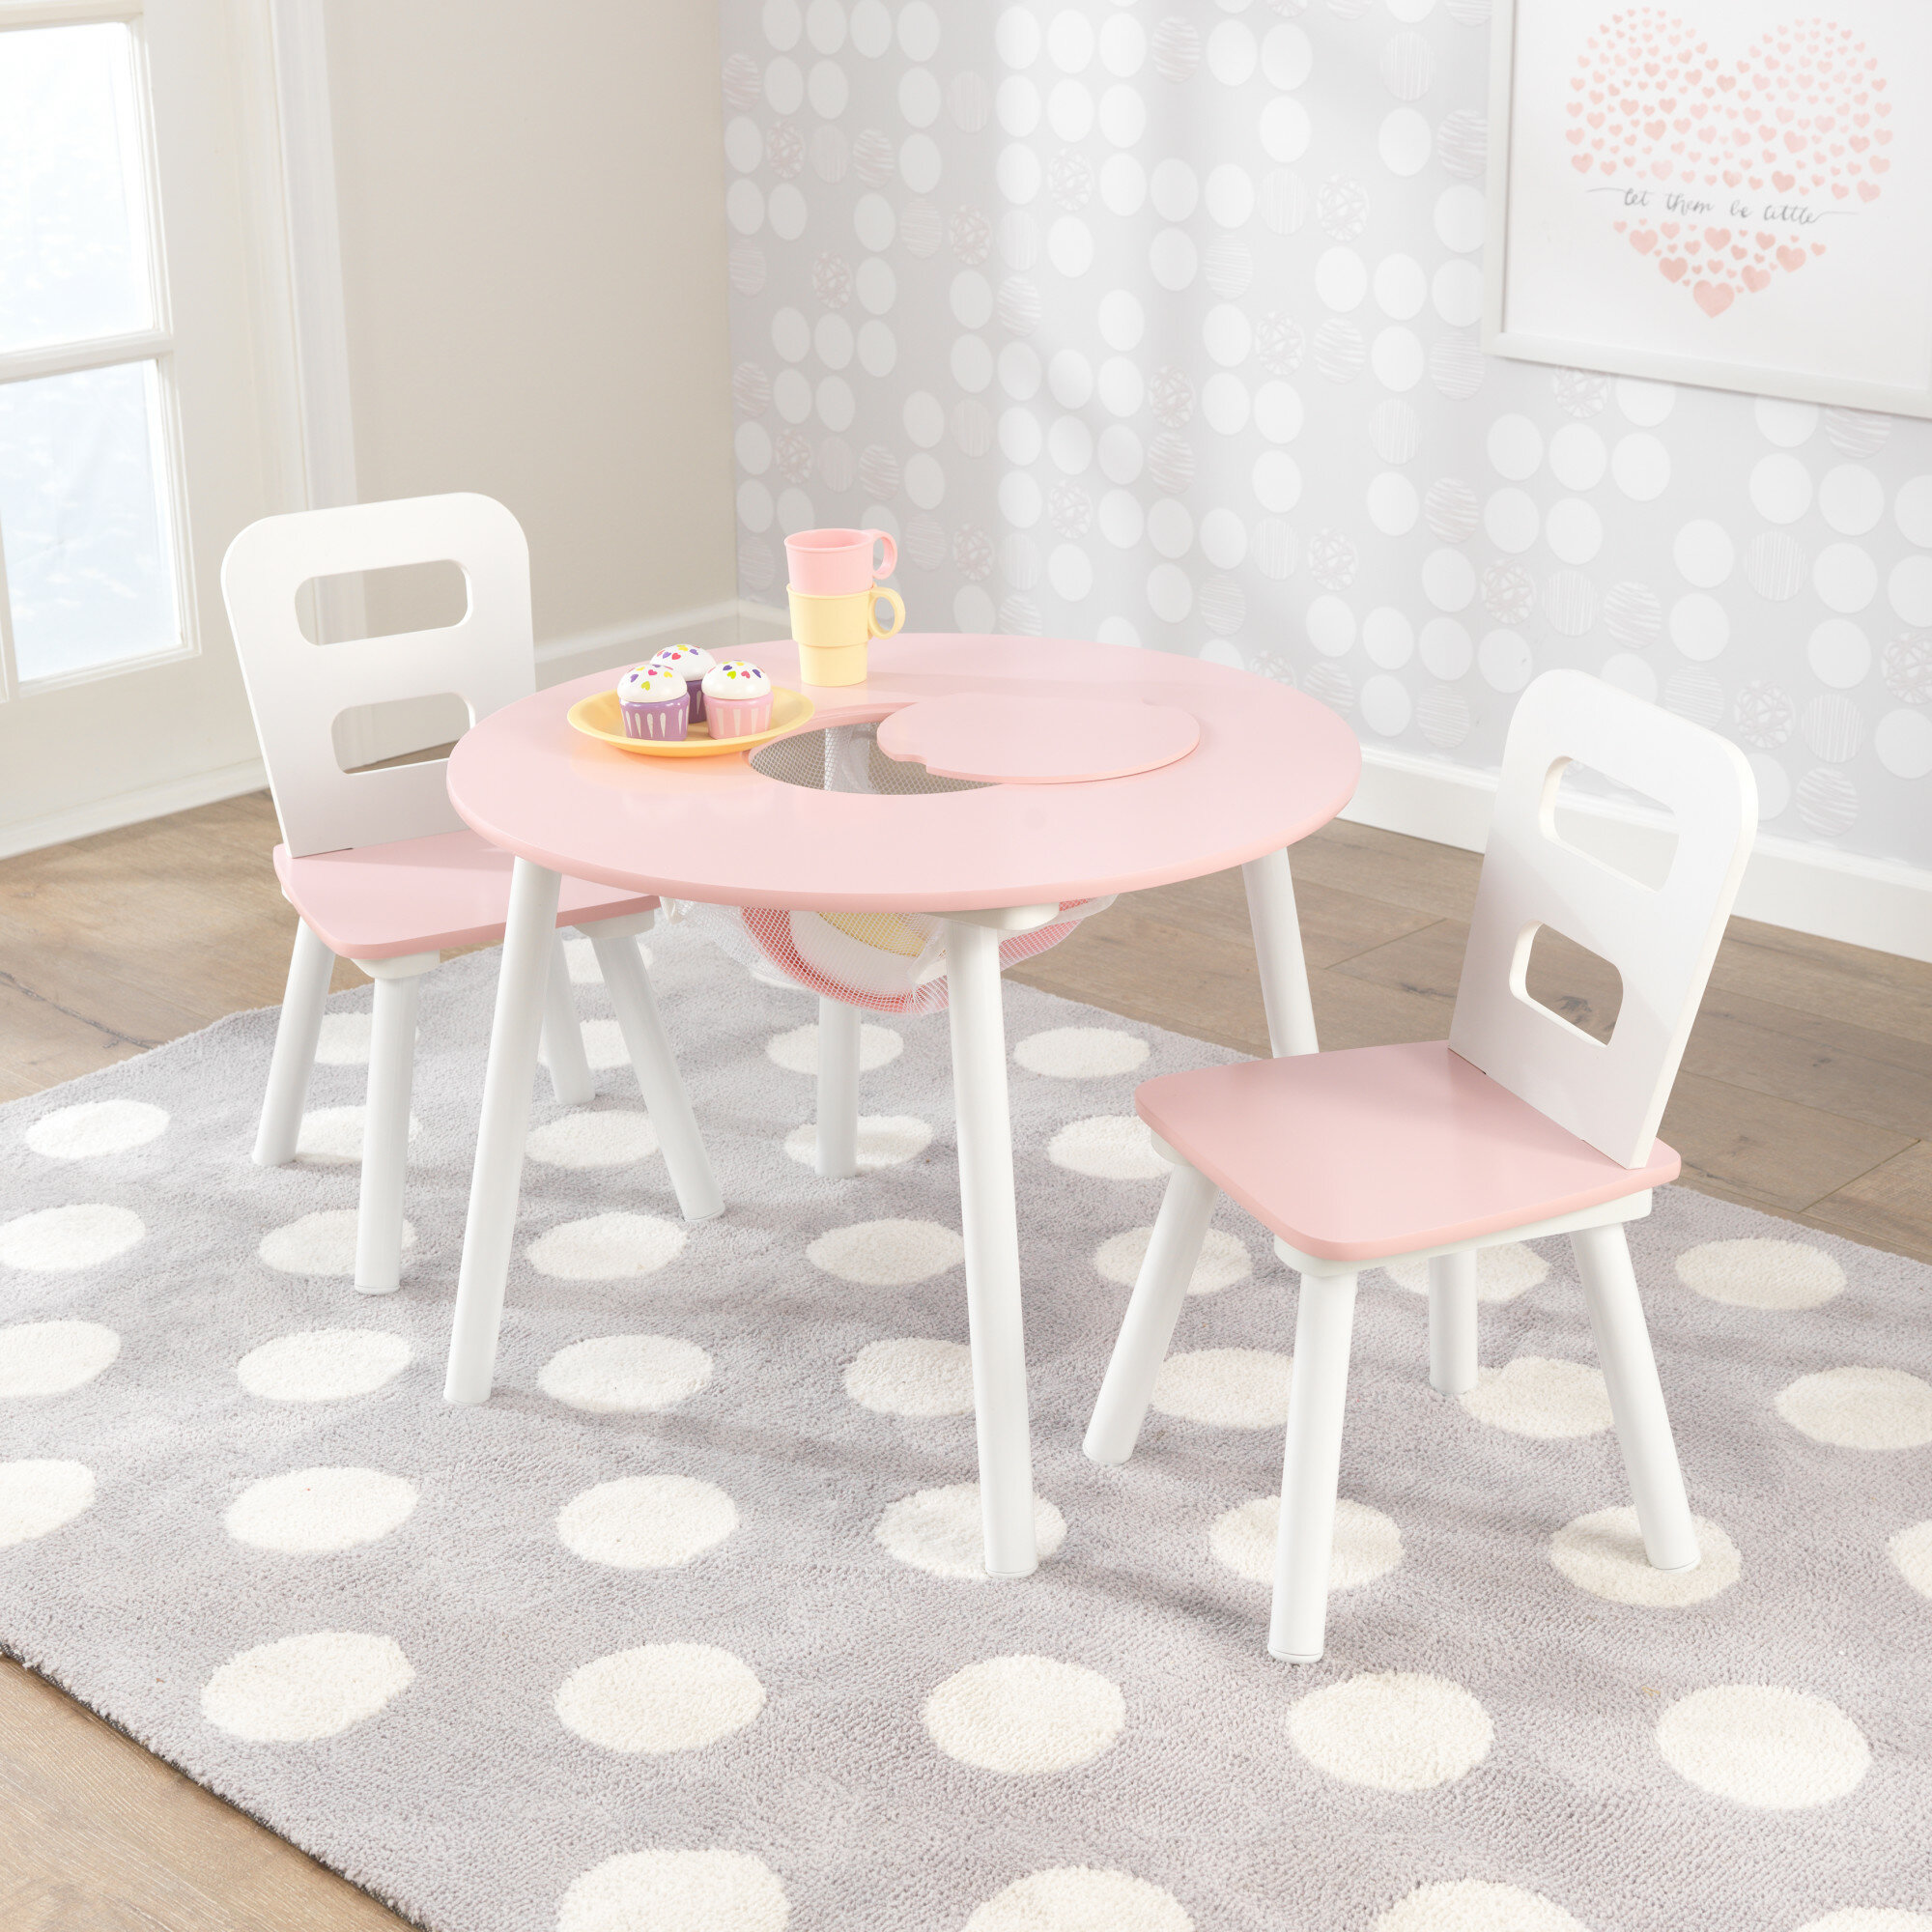 Kidkraft Round Table And 2 Chair Set Whitenatural.Round Storage Table 2 Chair Set